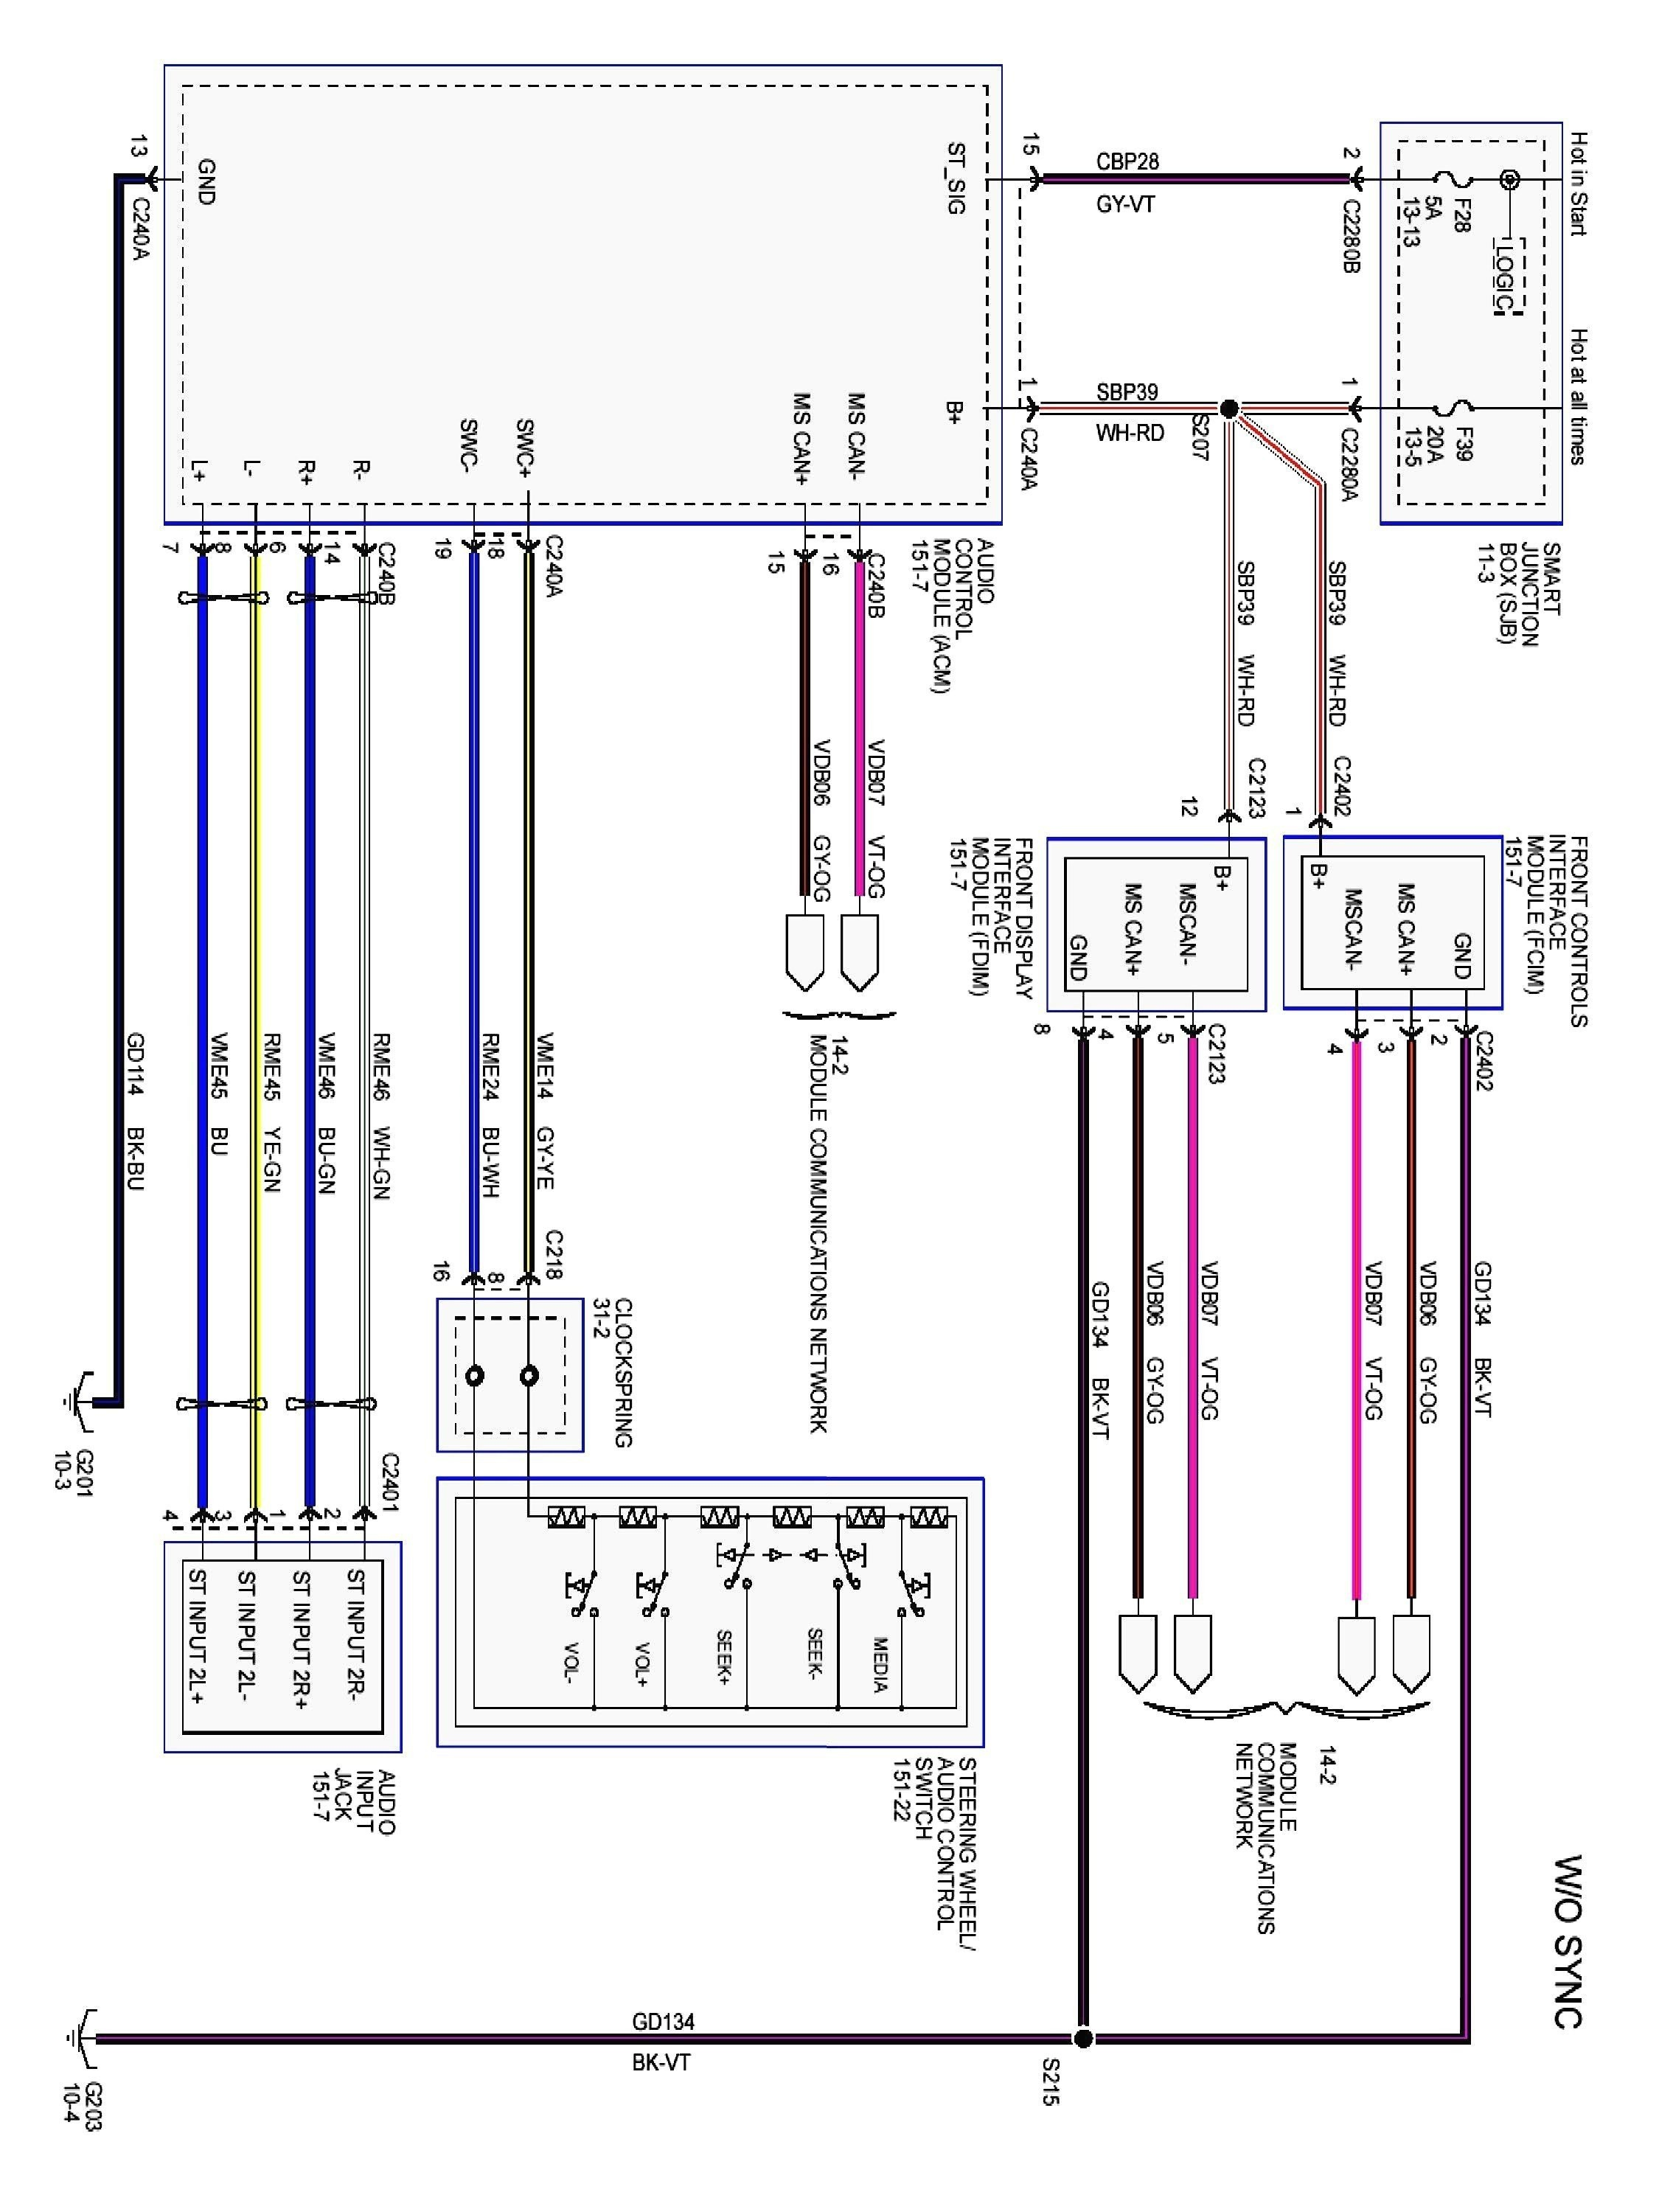 ford focus radio wiring diagrams - diagram design sources layout-peace -  layout-peace.nius-icbosa.it  diagram database - nius-icbosa.it